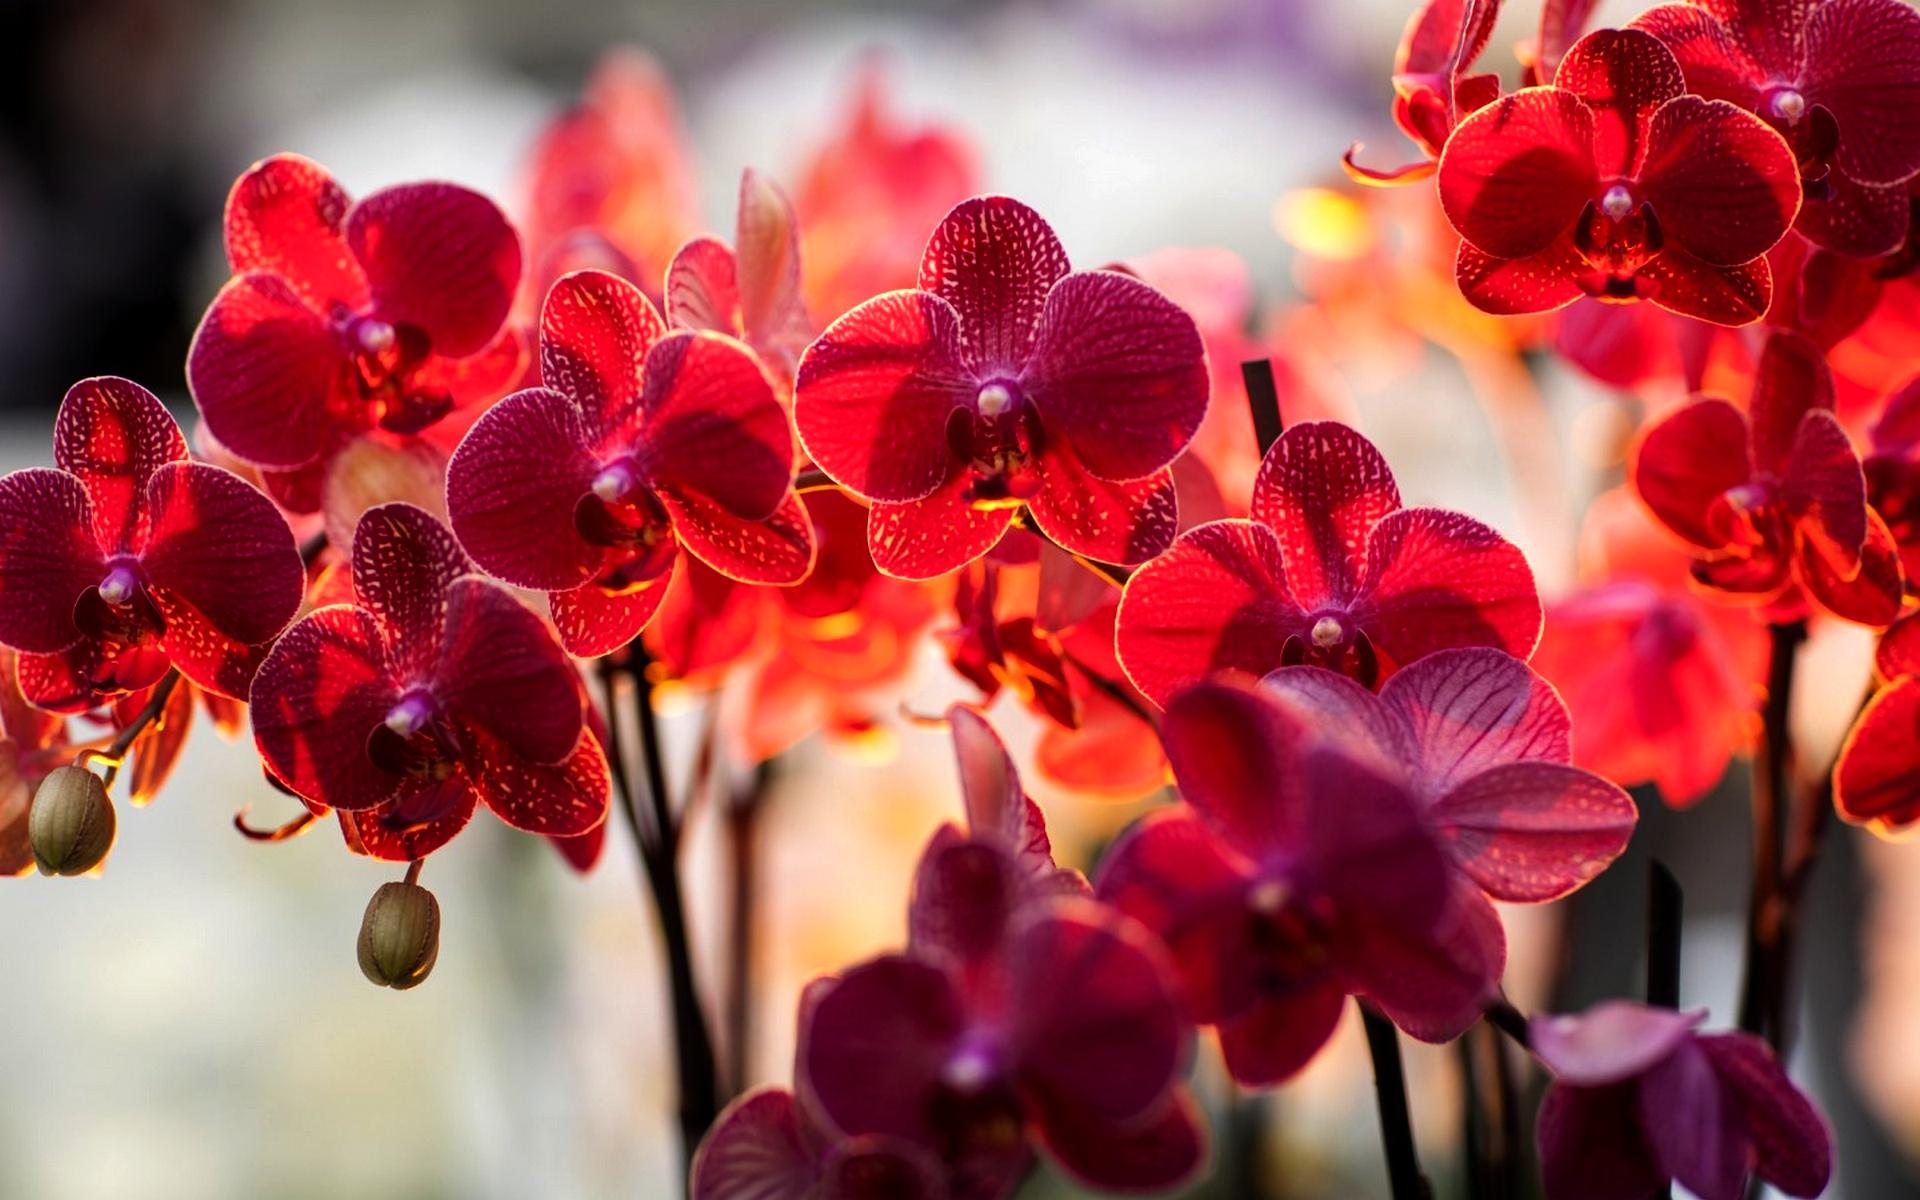 orchid wallpapers backgrounds images - photo #17